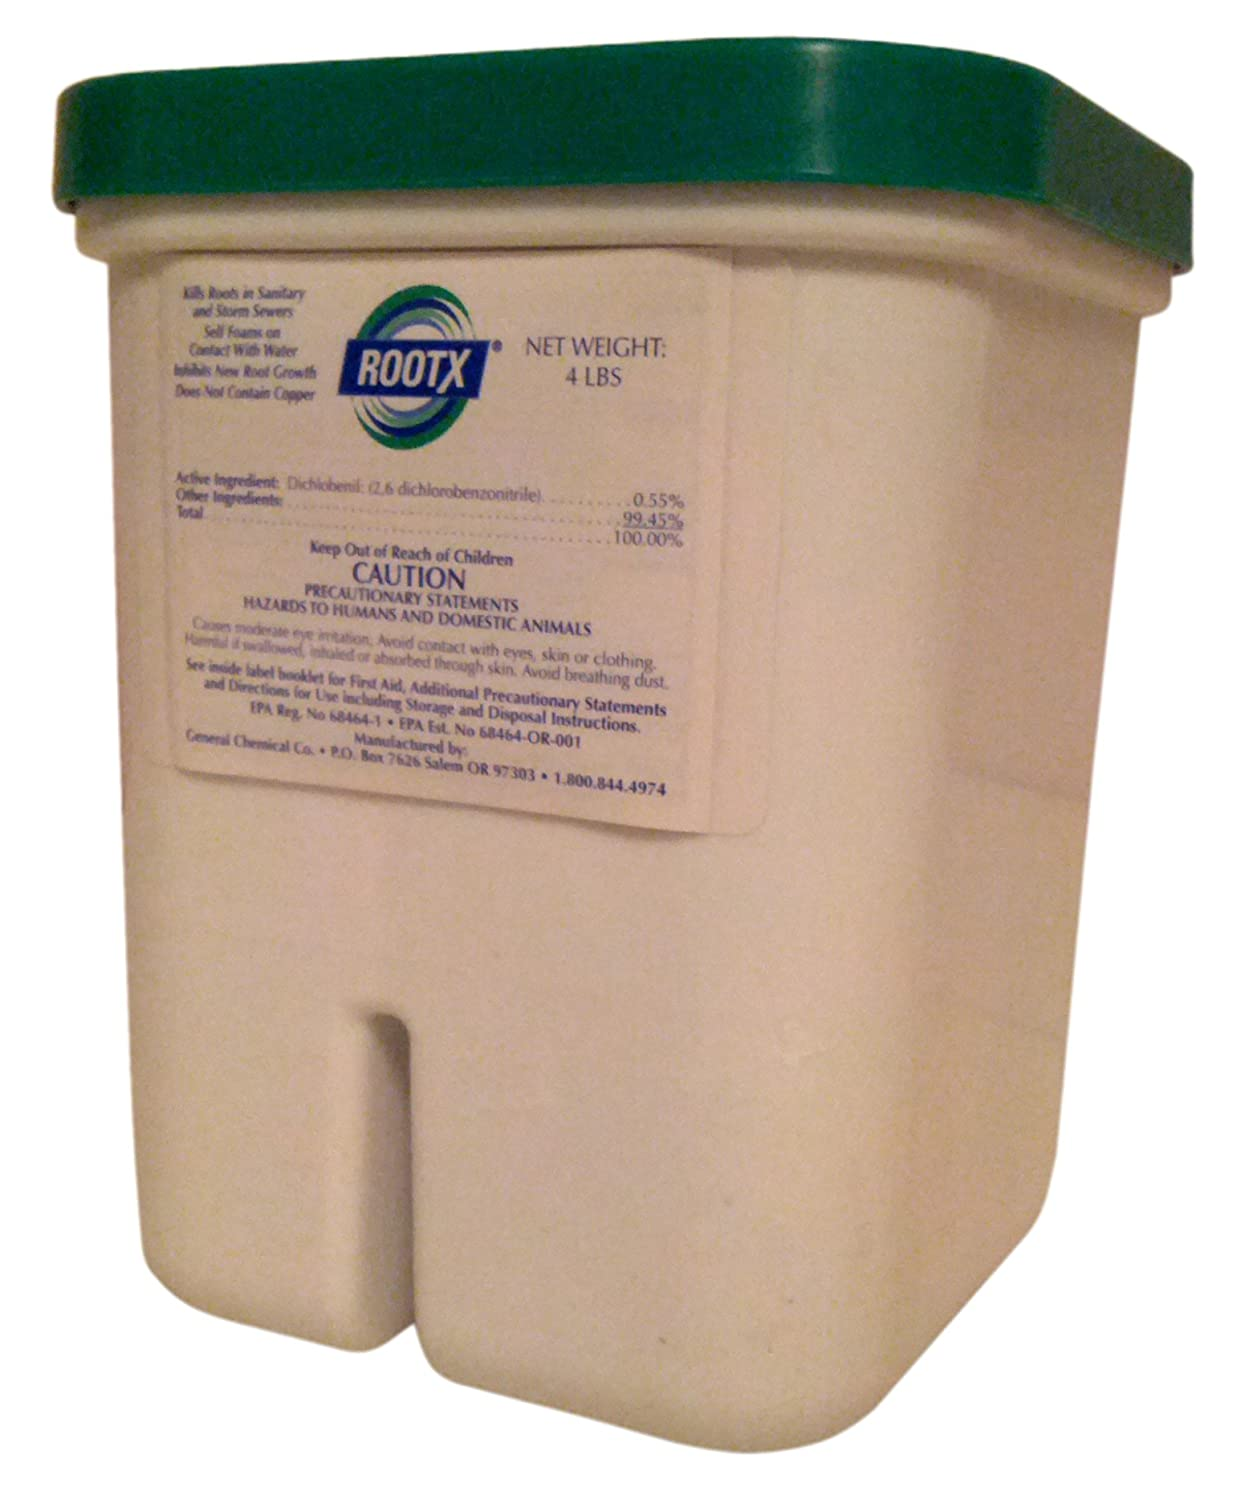 ROOTX - The Root Intrusion Solution - 4 Pound Container General Chemical Co RootX 4lb